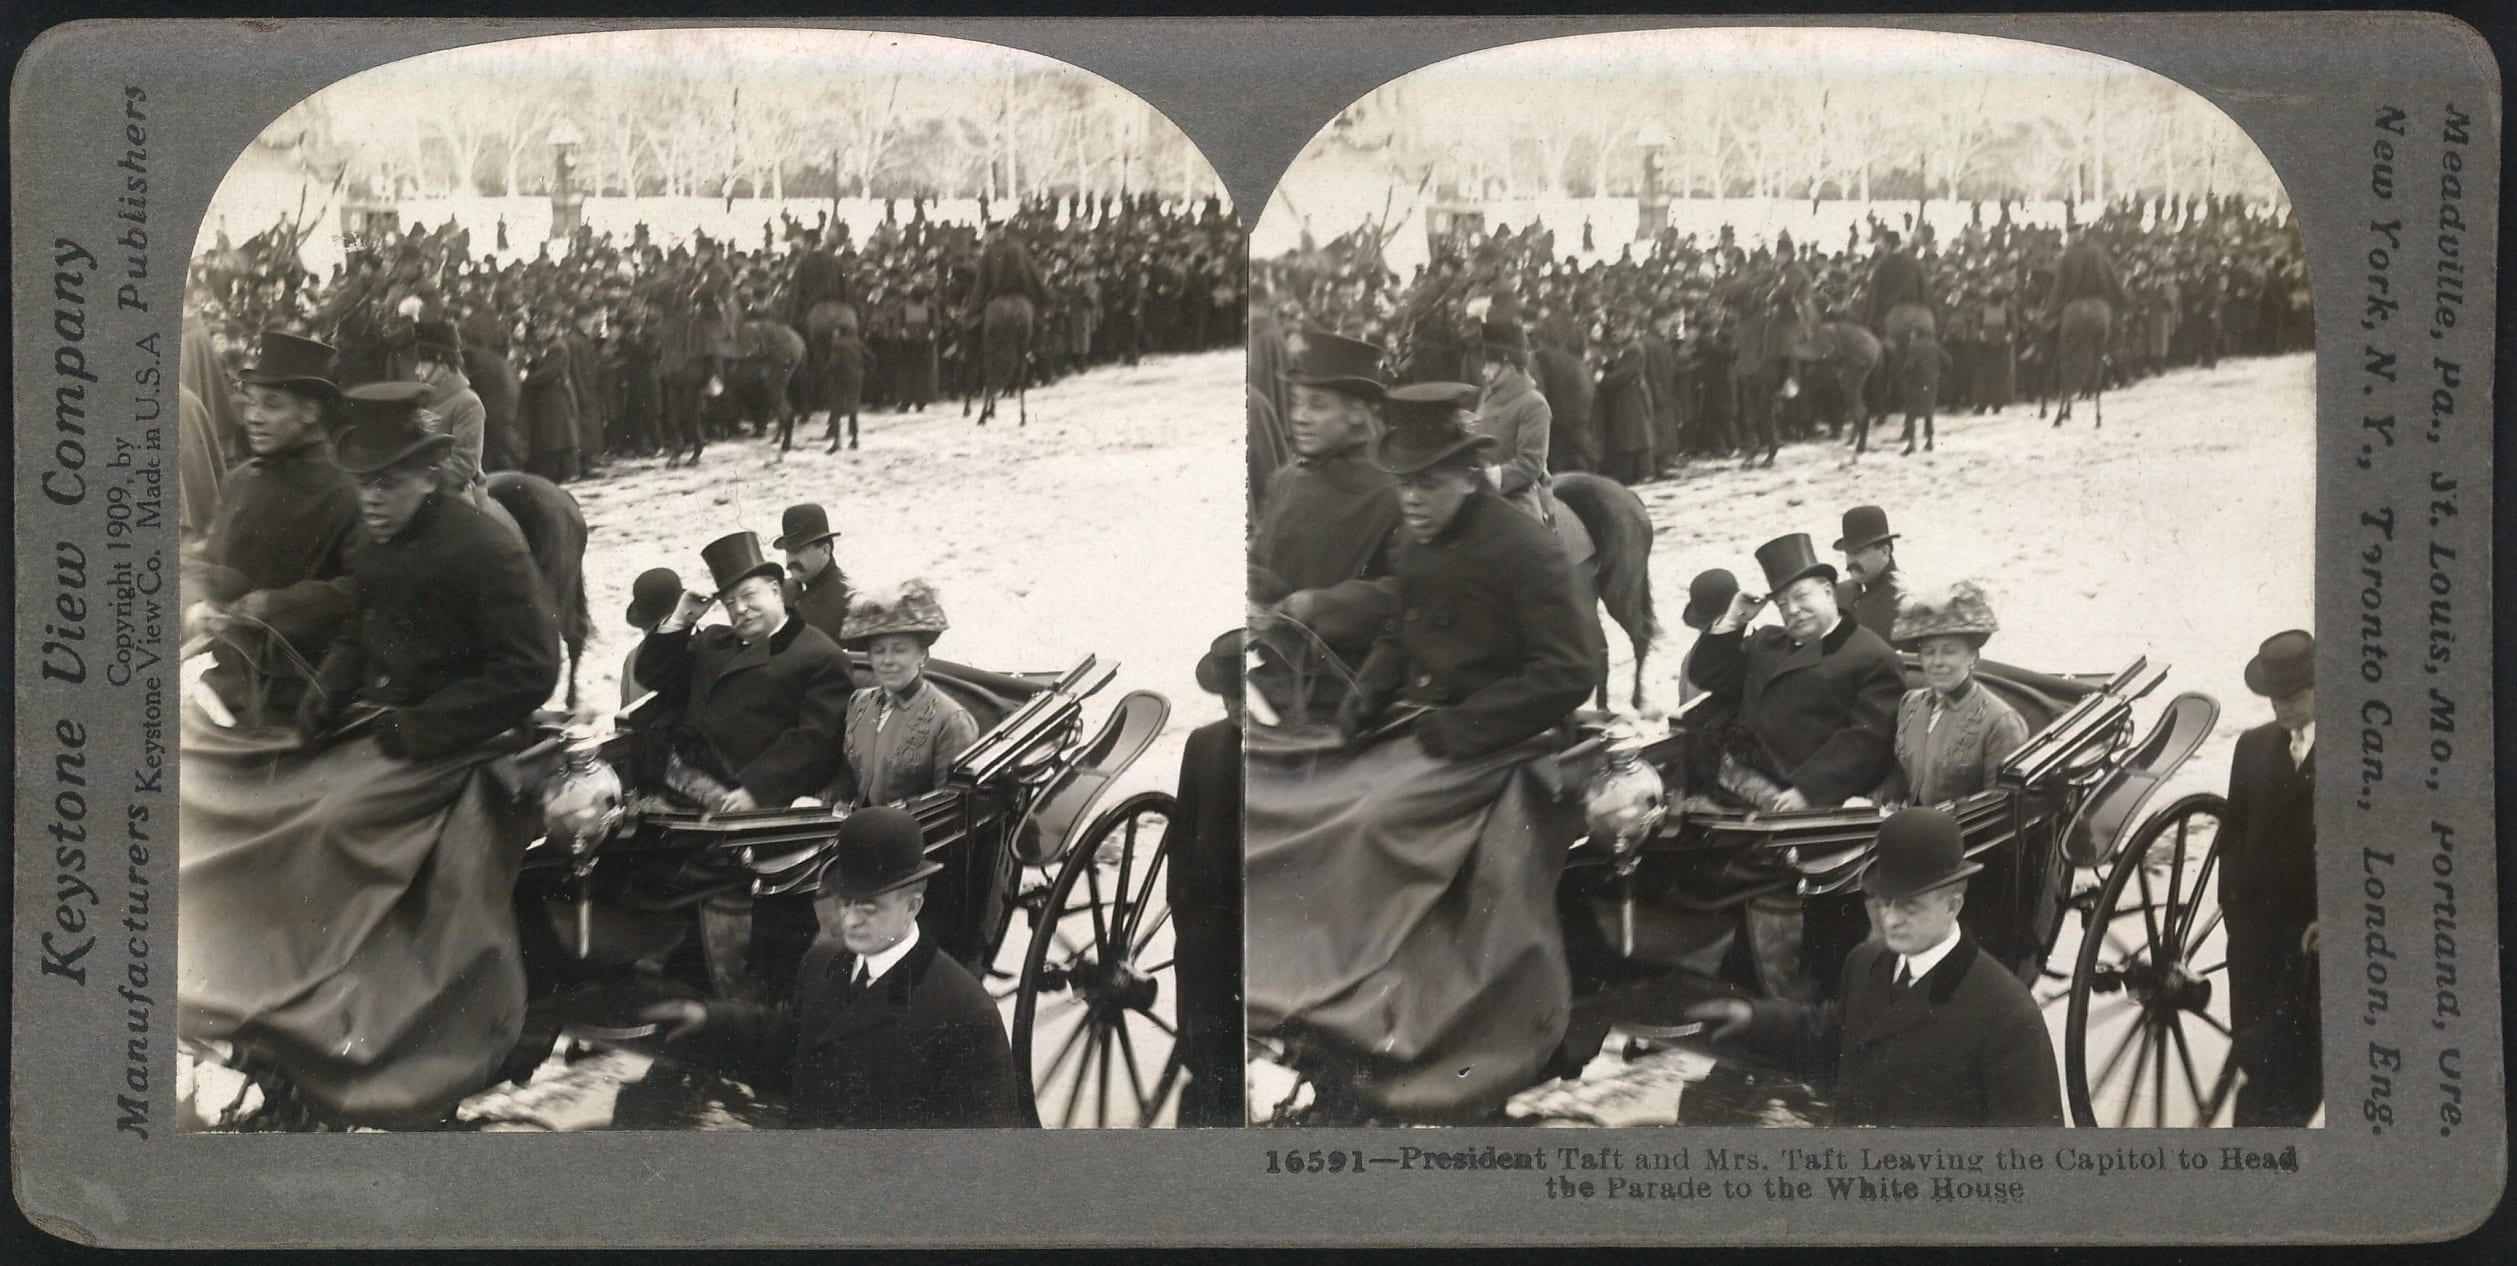 President and Mrs. Taft leaving the Capitol to head the parade to the White House [March 4, 1909].